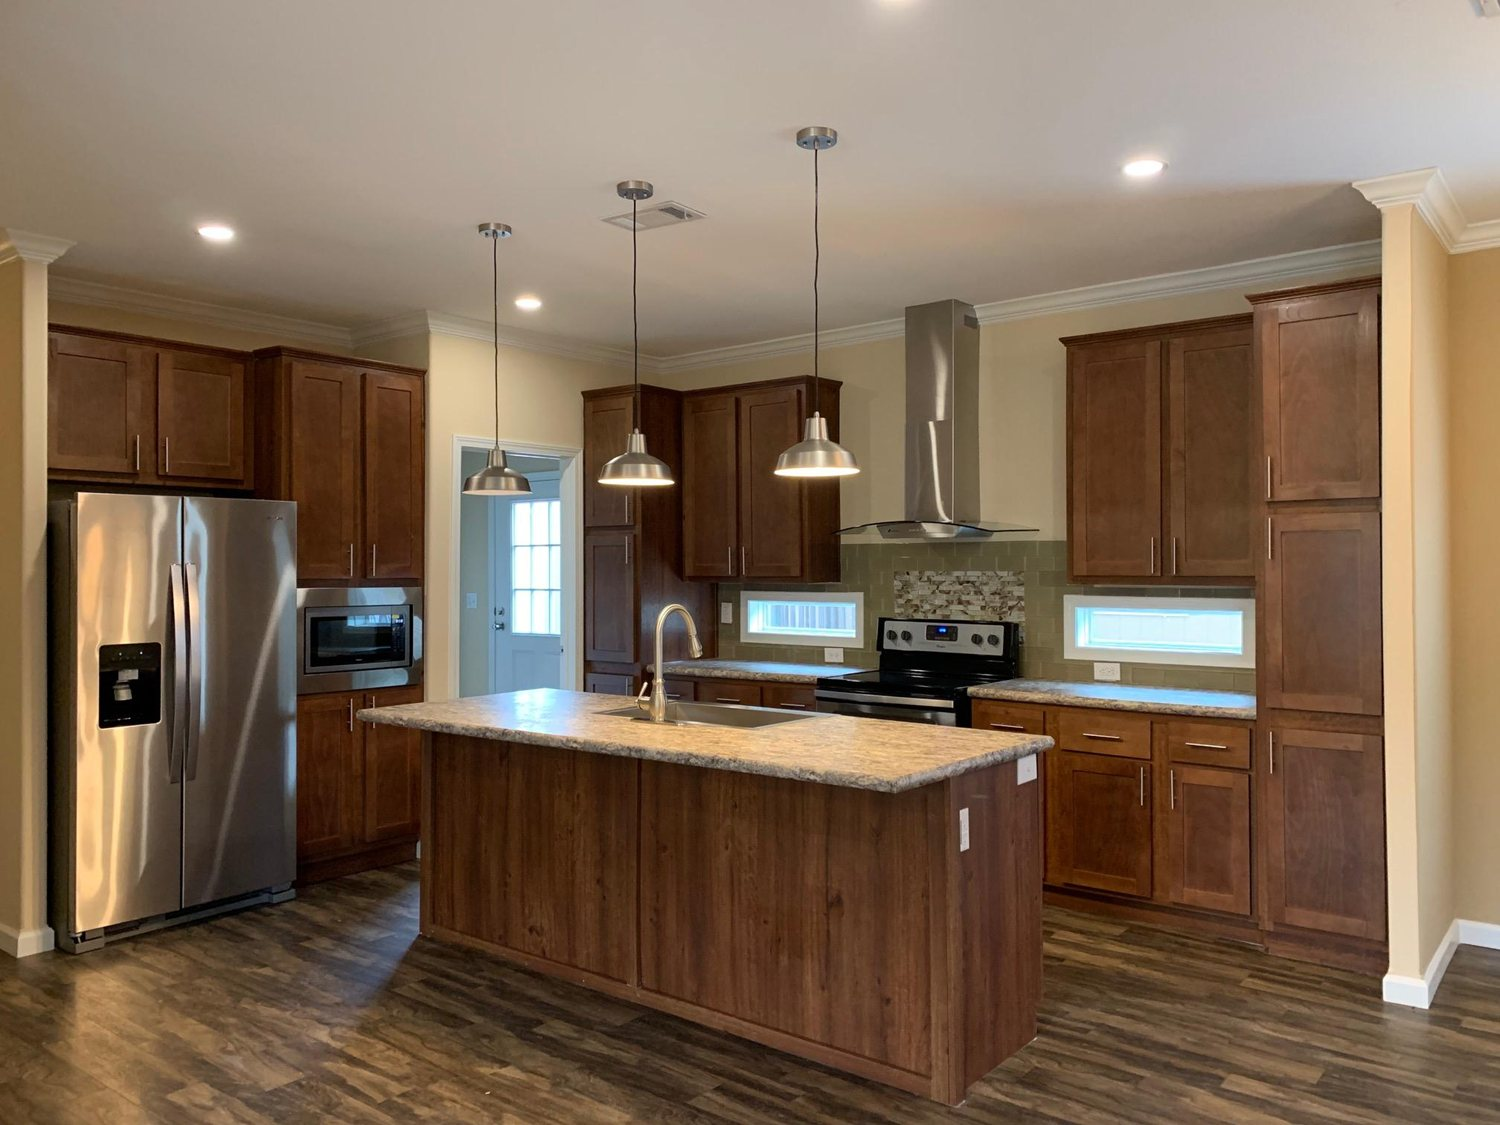 Harston Woods Harston Woods subdivision 11201 Loblolly Lane Euless TX 76040